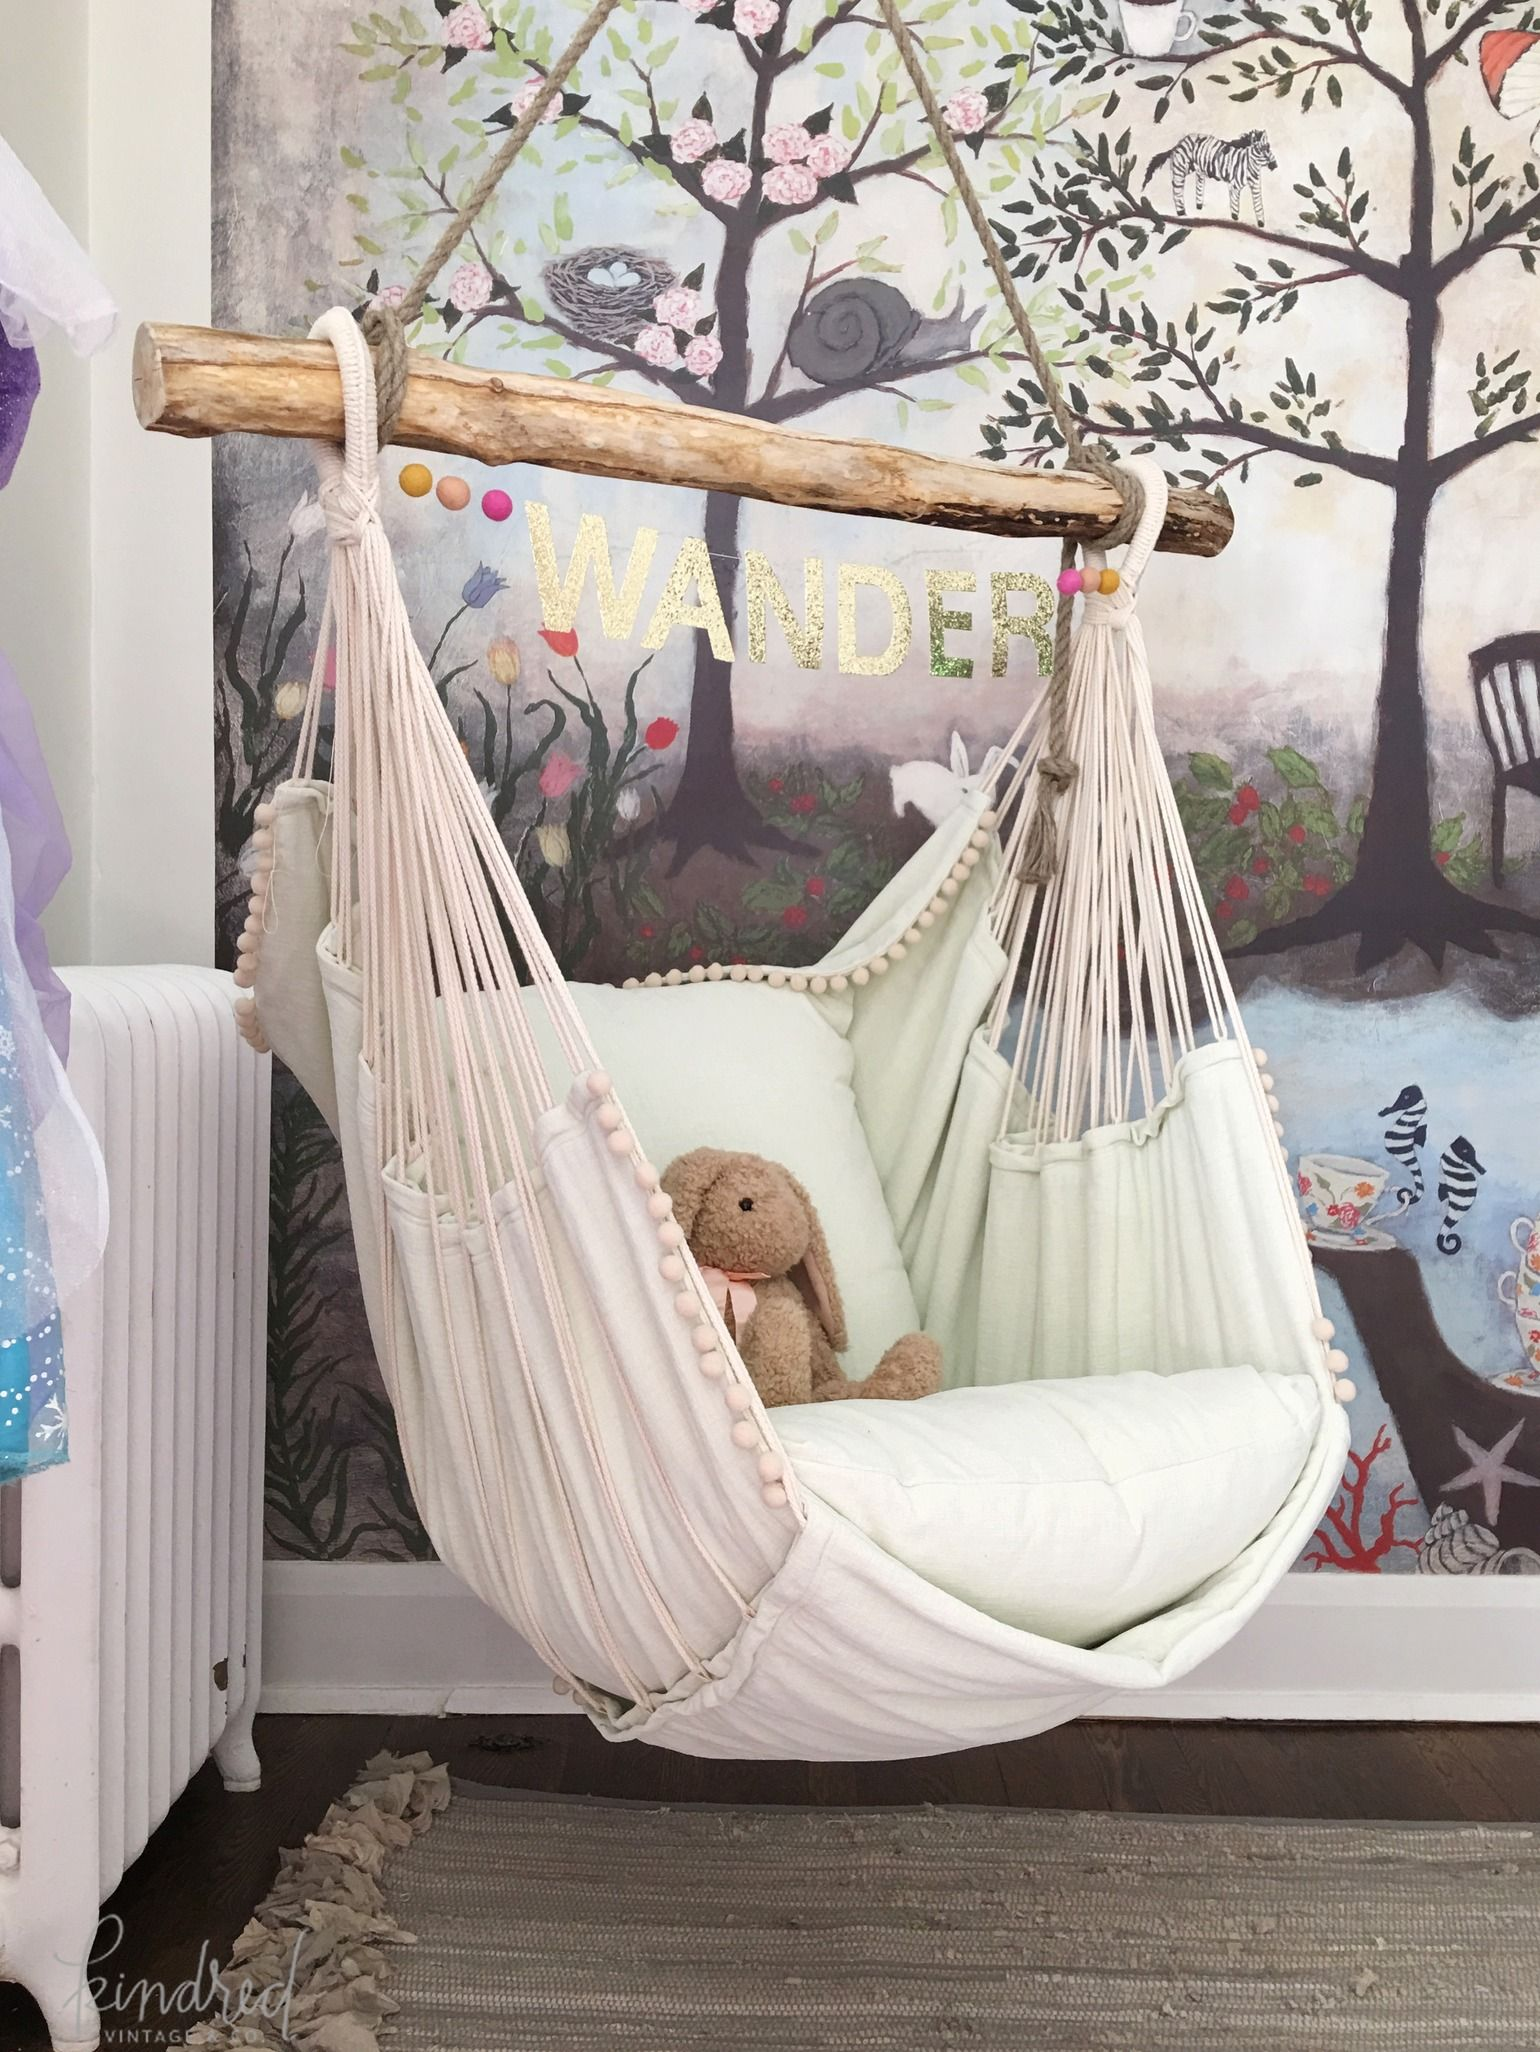 This Hammock Chair And Woodland Wall Mural Wallpaper Are Wonderful Design  Ideas For A Baby Nursery, Kidu0027s Room Or Playroom   Unique Nursery And  Childrenu0027s ...